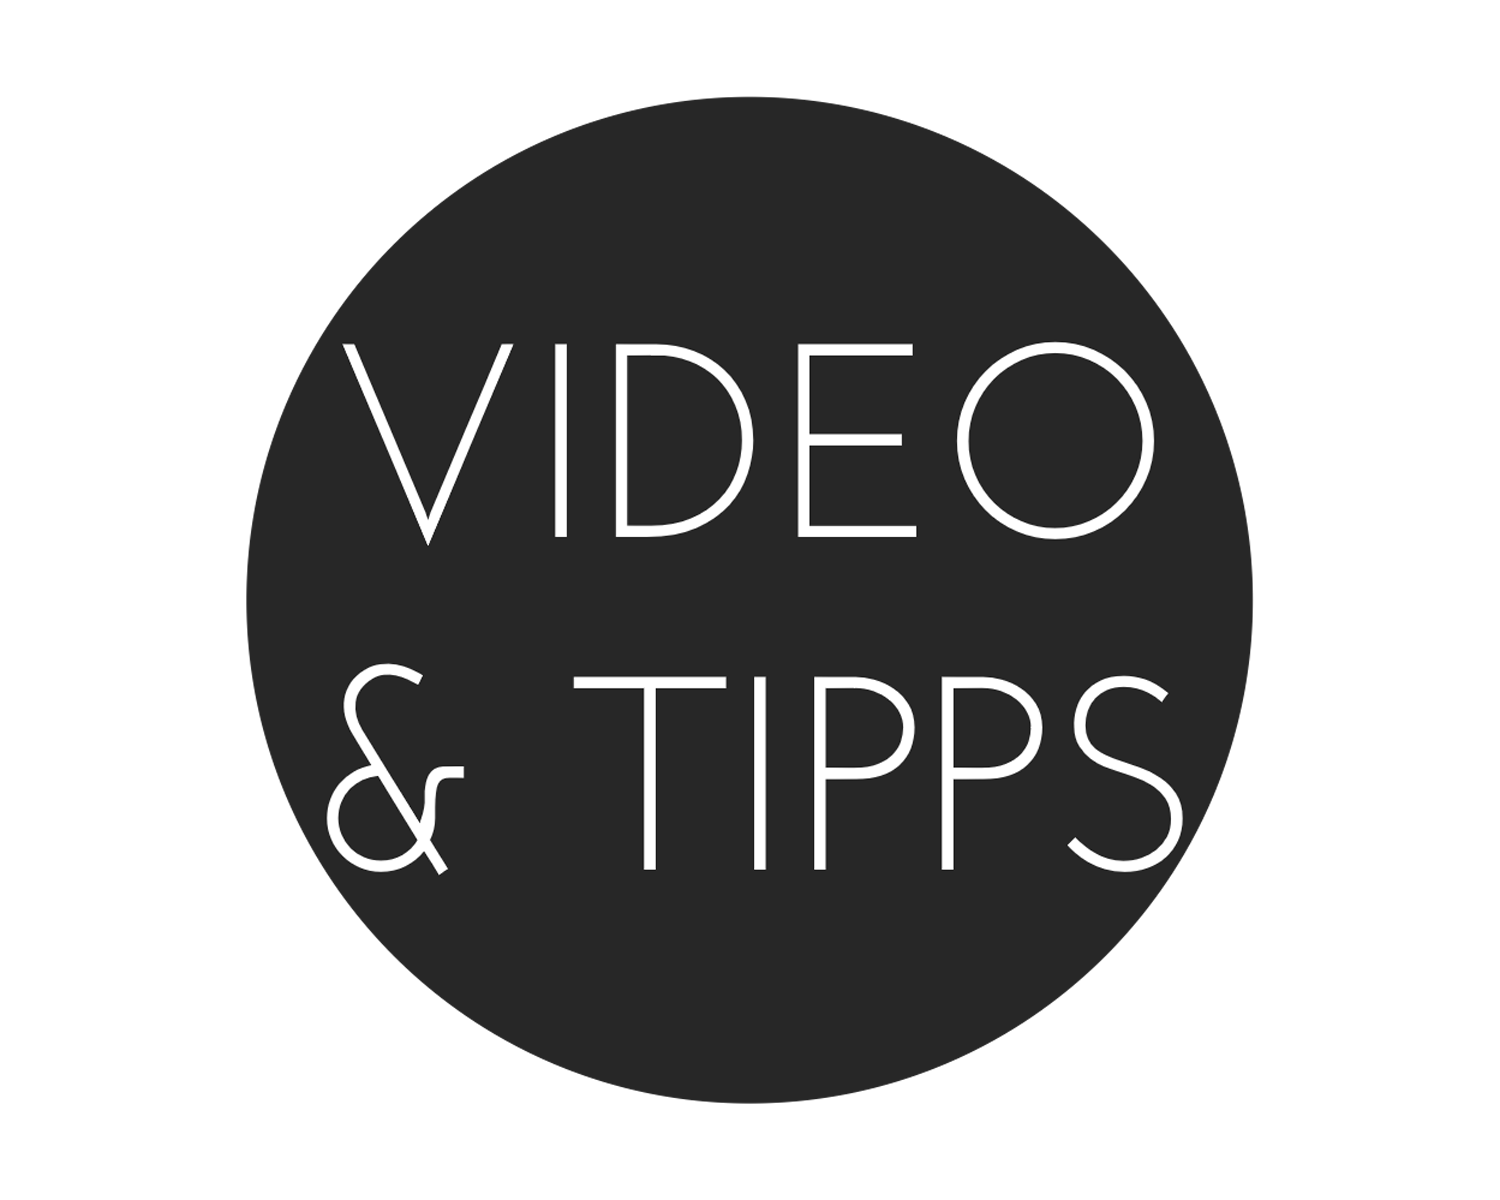 tipps 1 blog icon.png